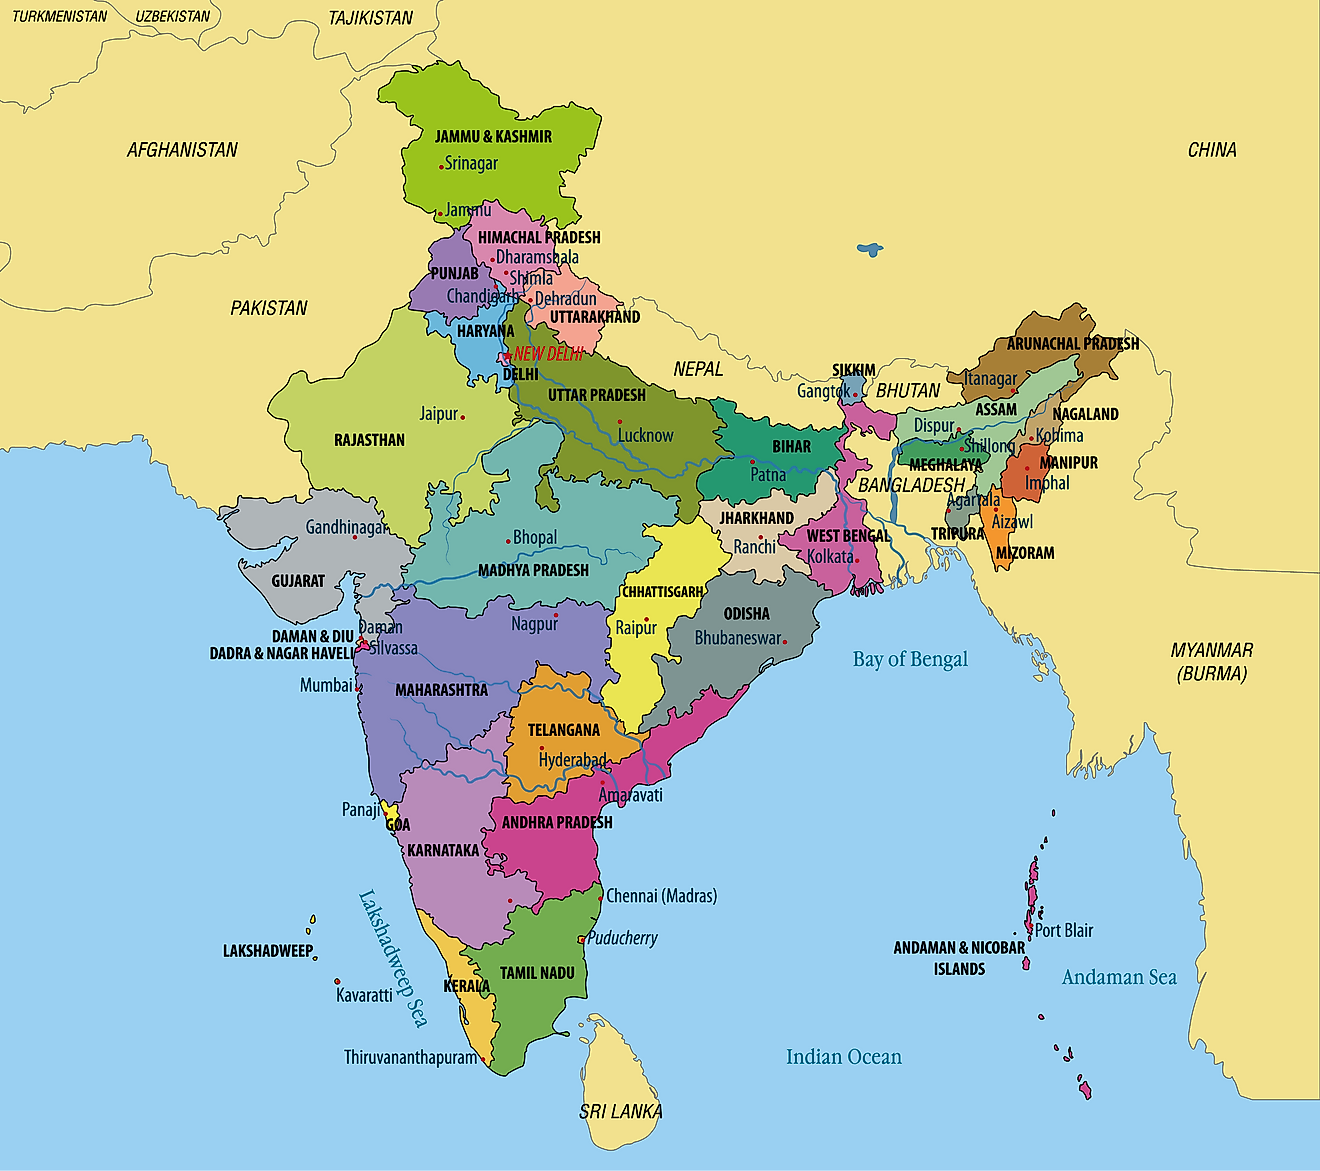 Political Map of India showing its 28 States and 8 Union Territories and the capital city - New Delhi